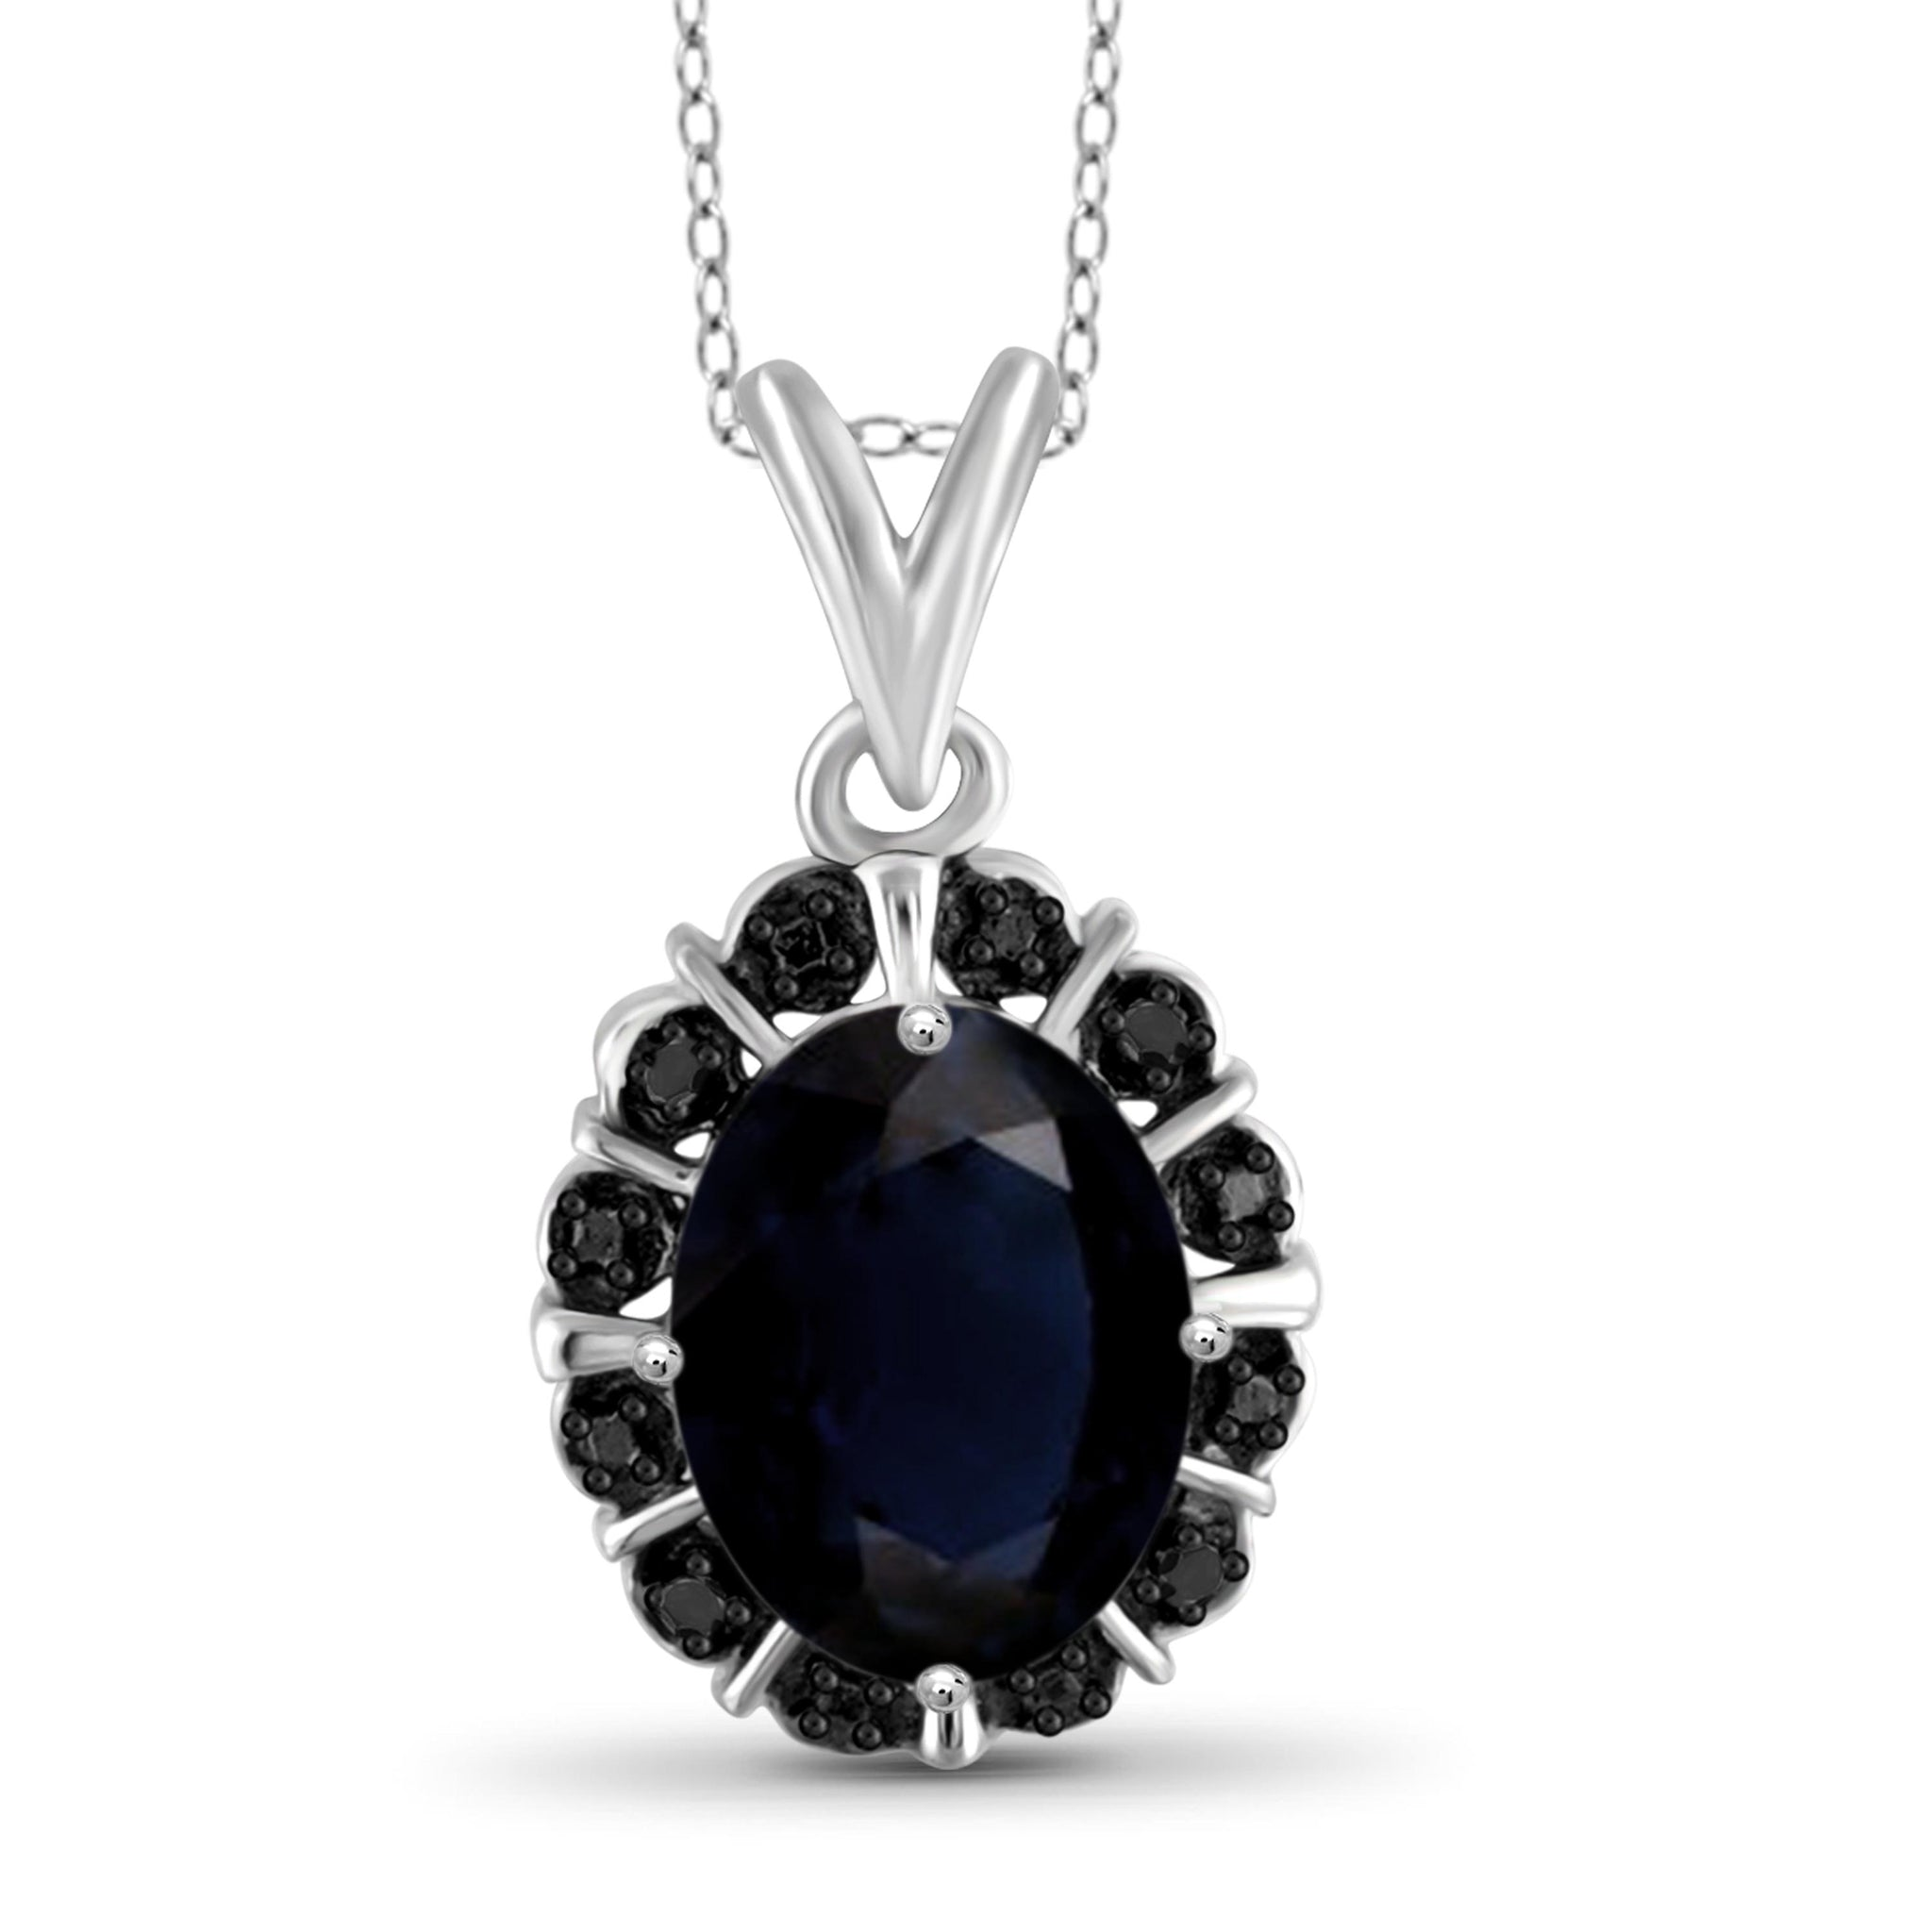 JewelonFire 1.90 Carat T.G.W. Sapphire and Black Diamond Accent Sterling Silver Fashion Pendant - Assorted Colors